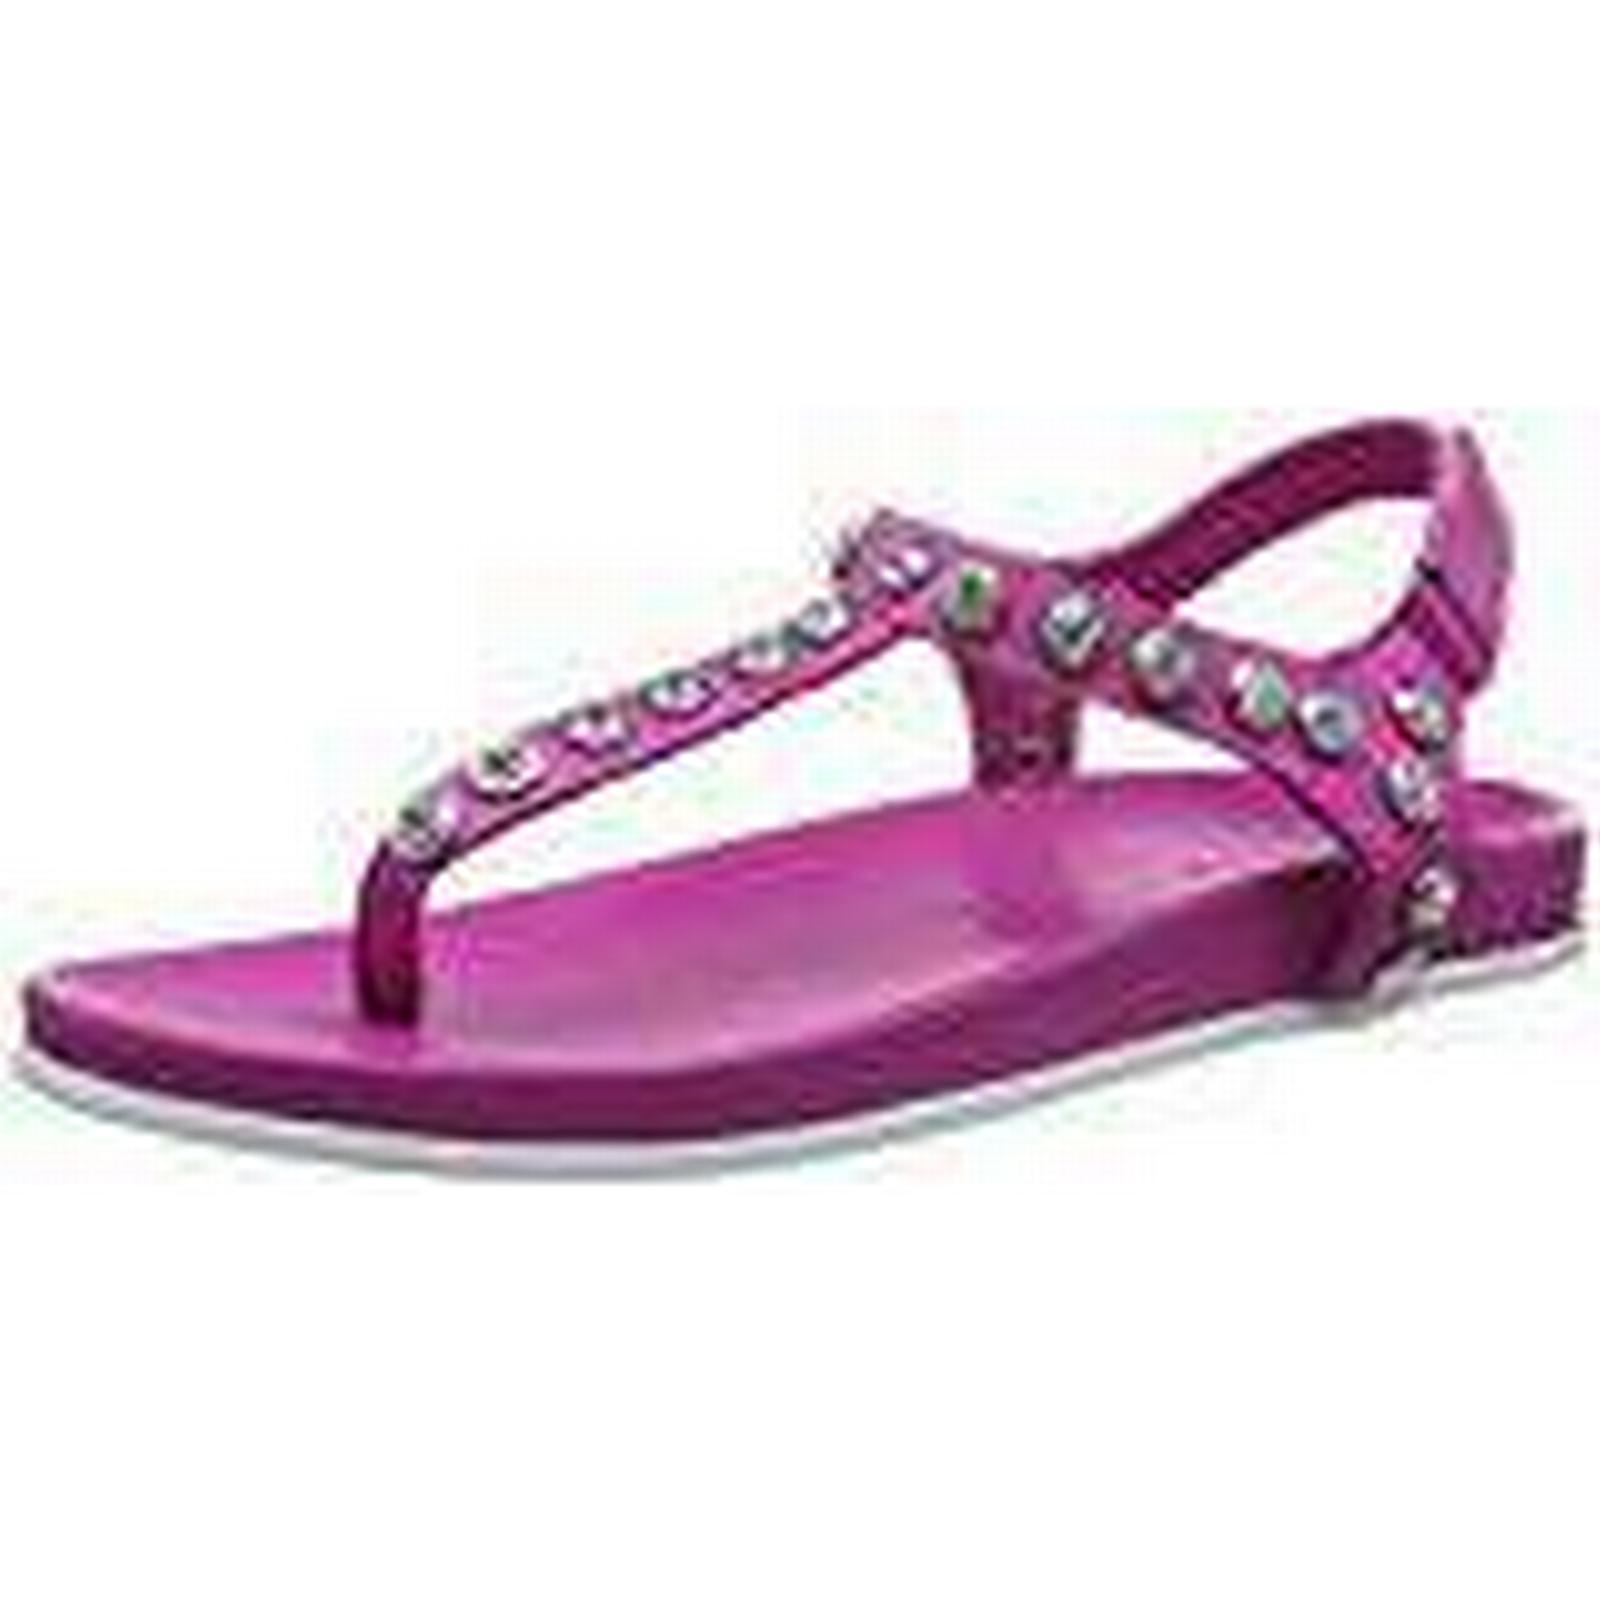 Inuovo Sandals Women's 6282 Open Toe Sandals Inuovo Pink Size: 6 bd88d0